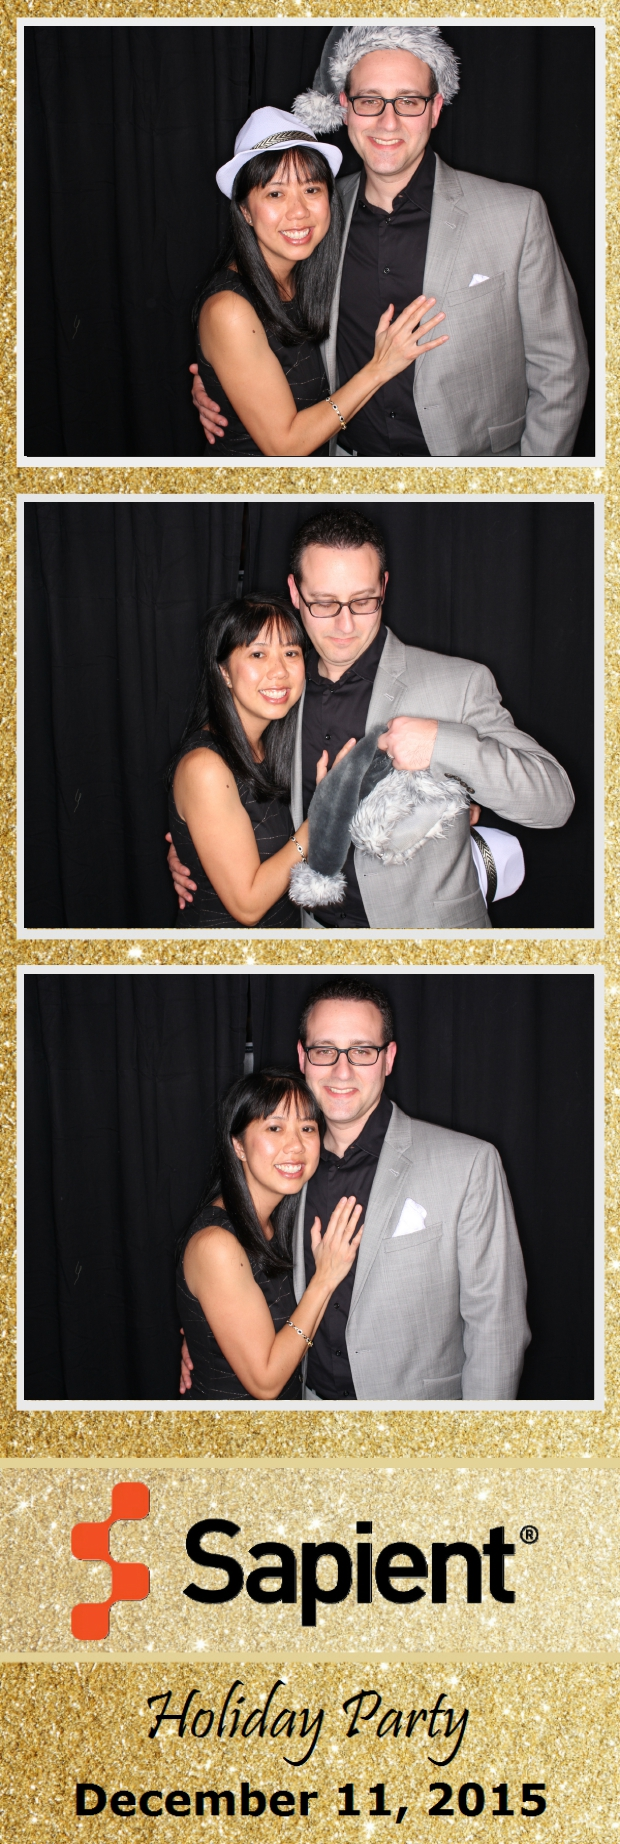 Guest House Events Photo Booth Sapient Holiday Party (47).jpg